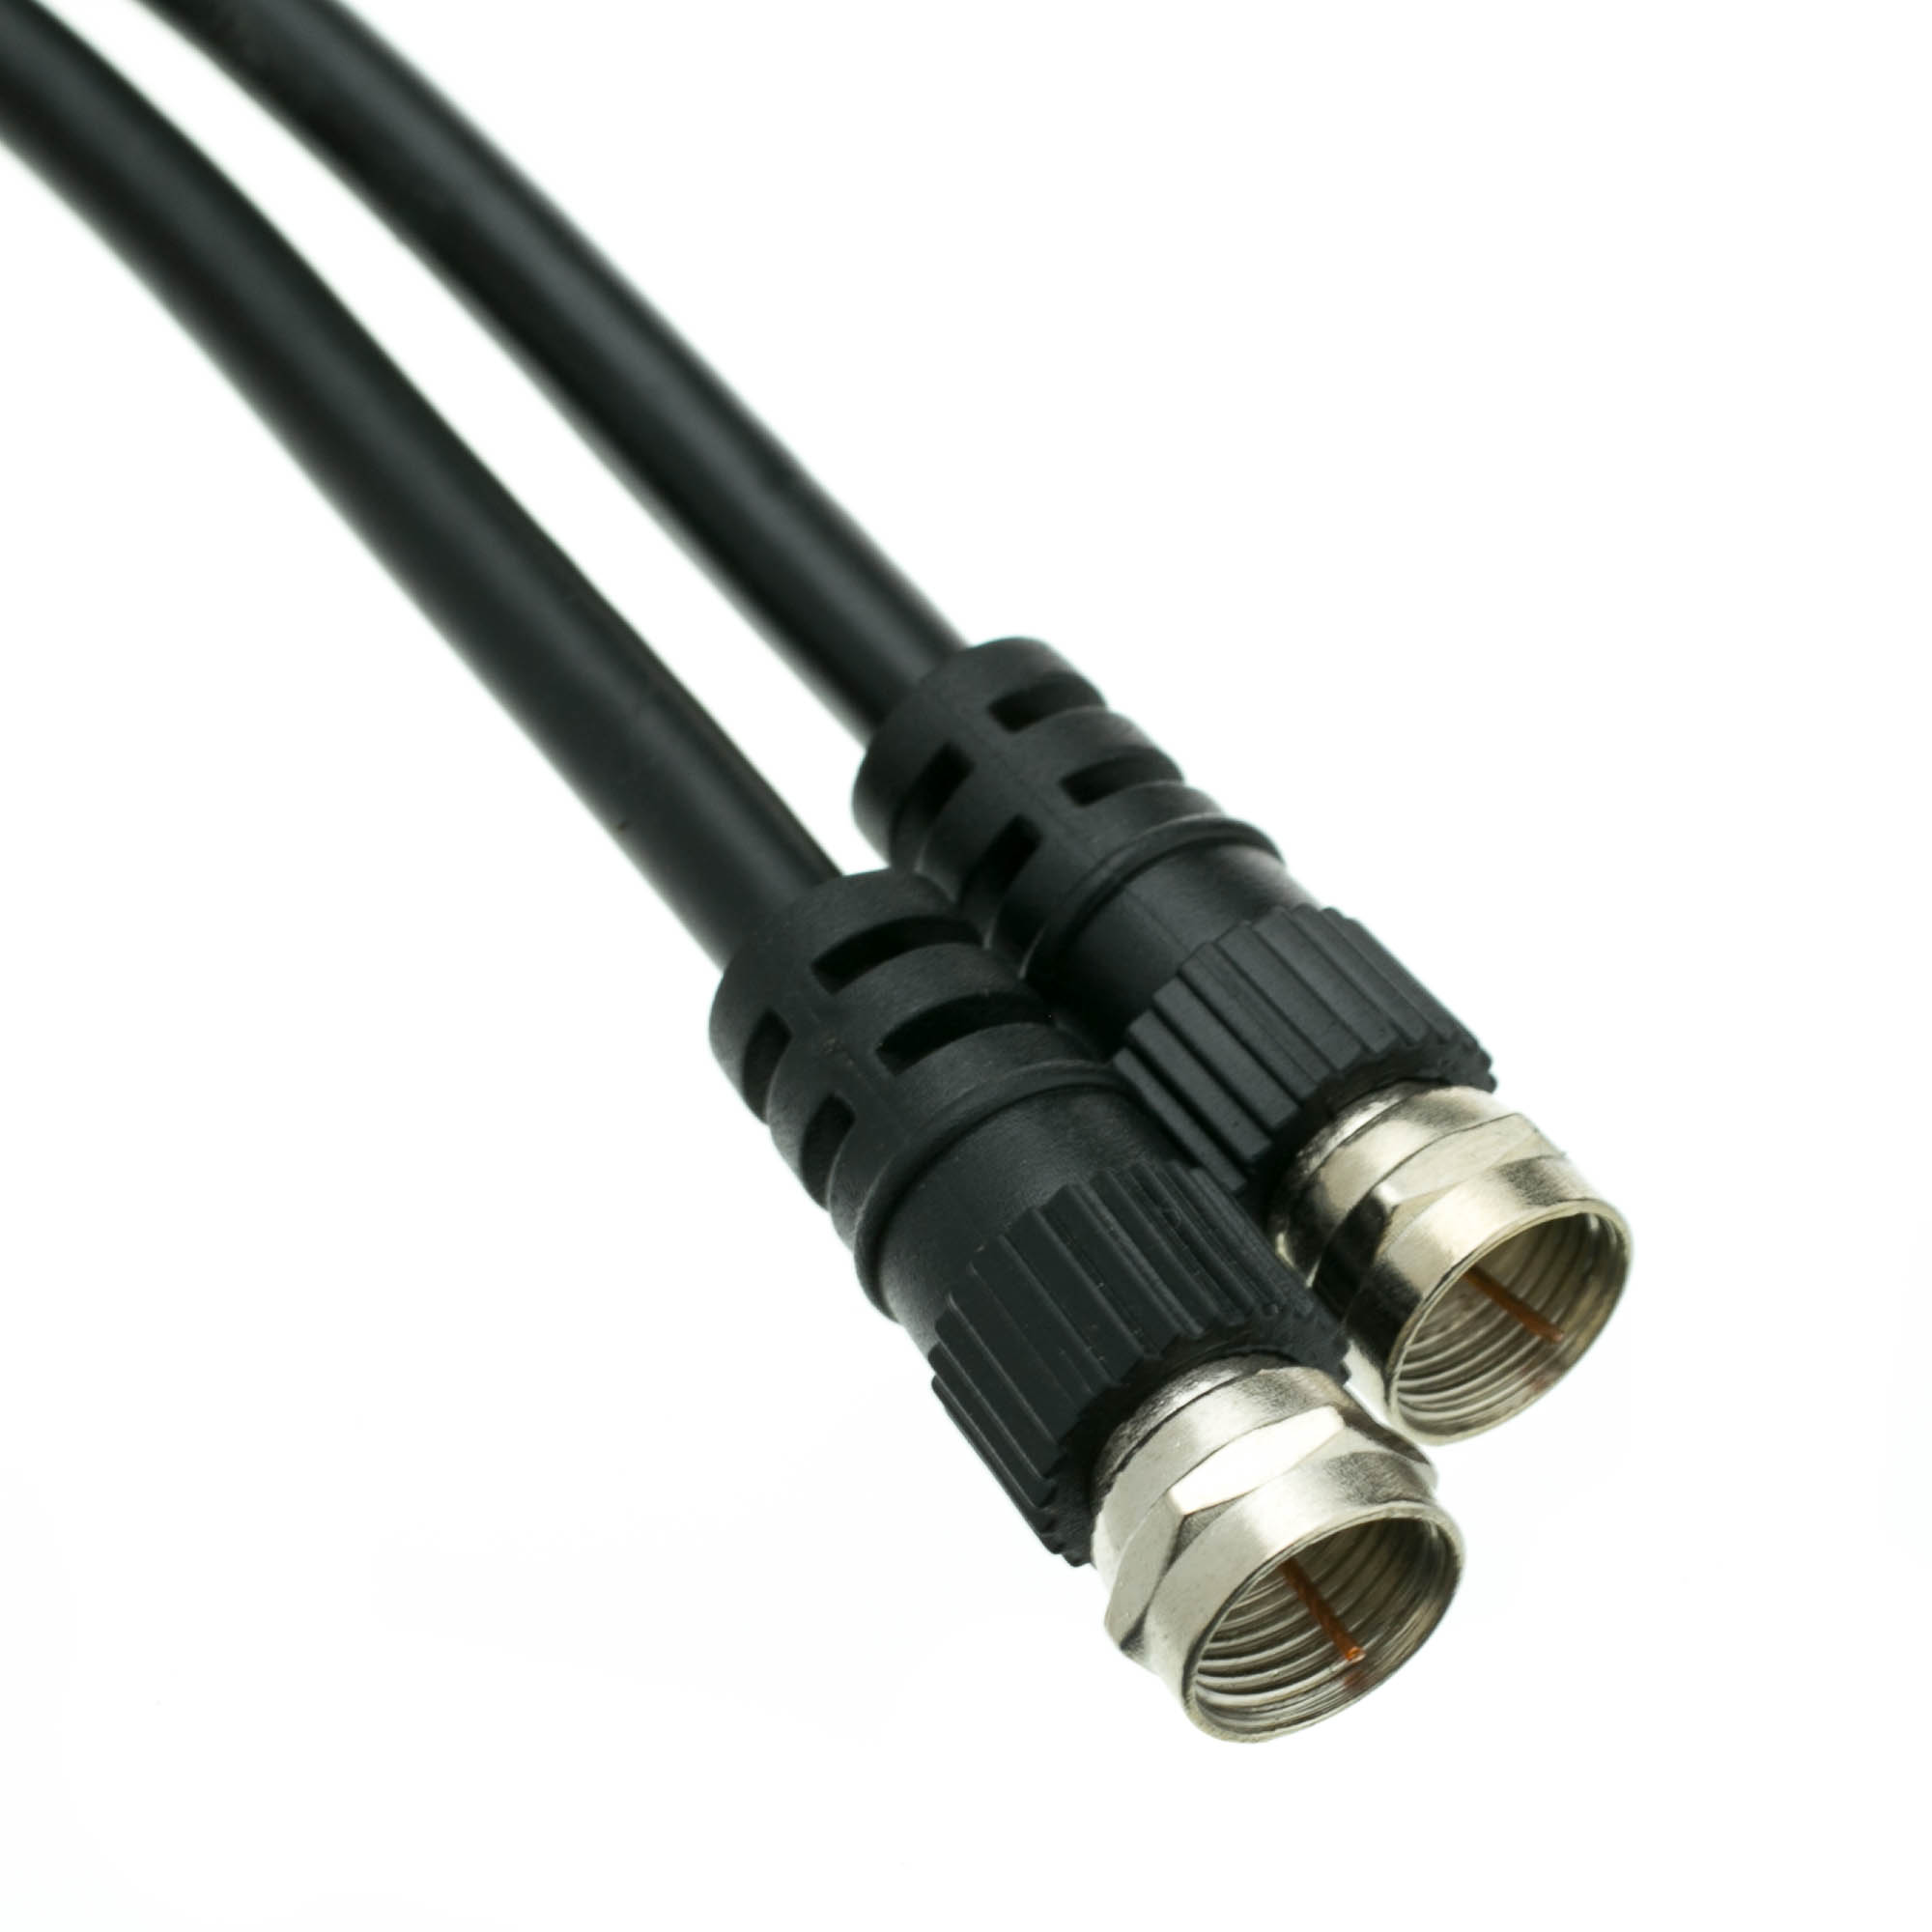 100ft Rg59 Coaxial Cable Black